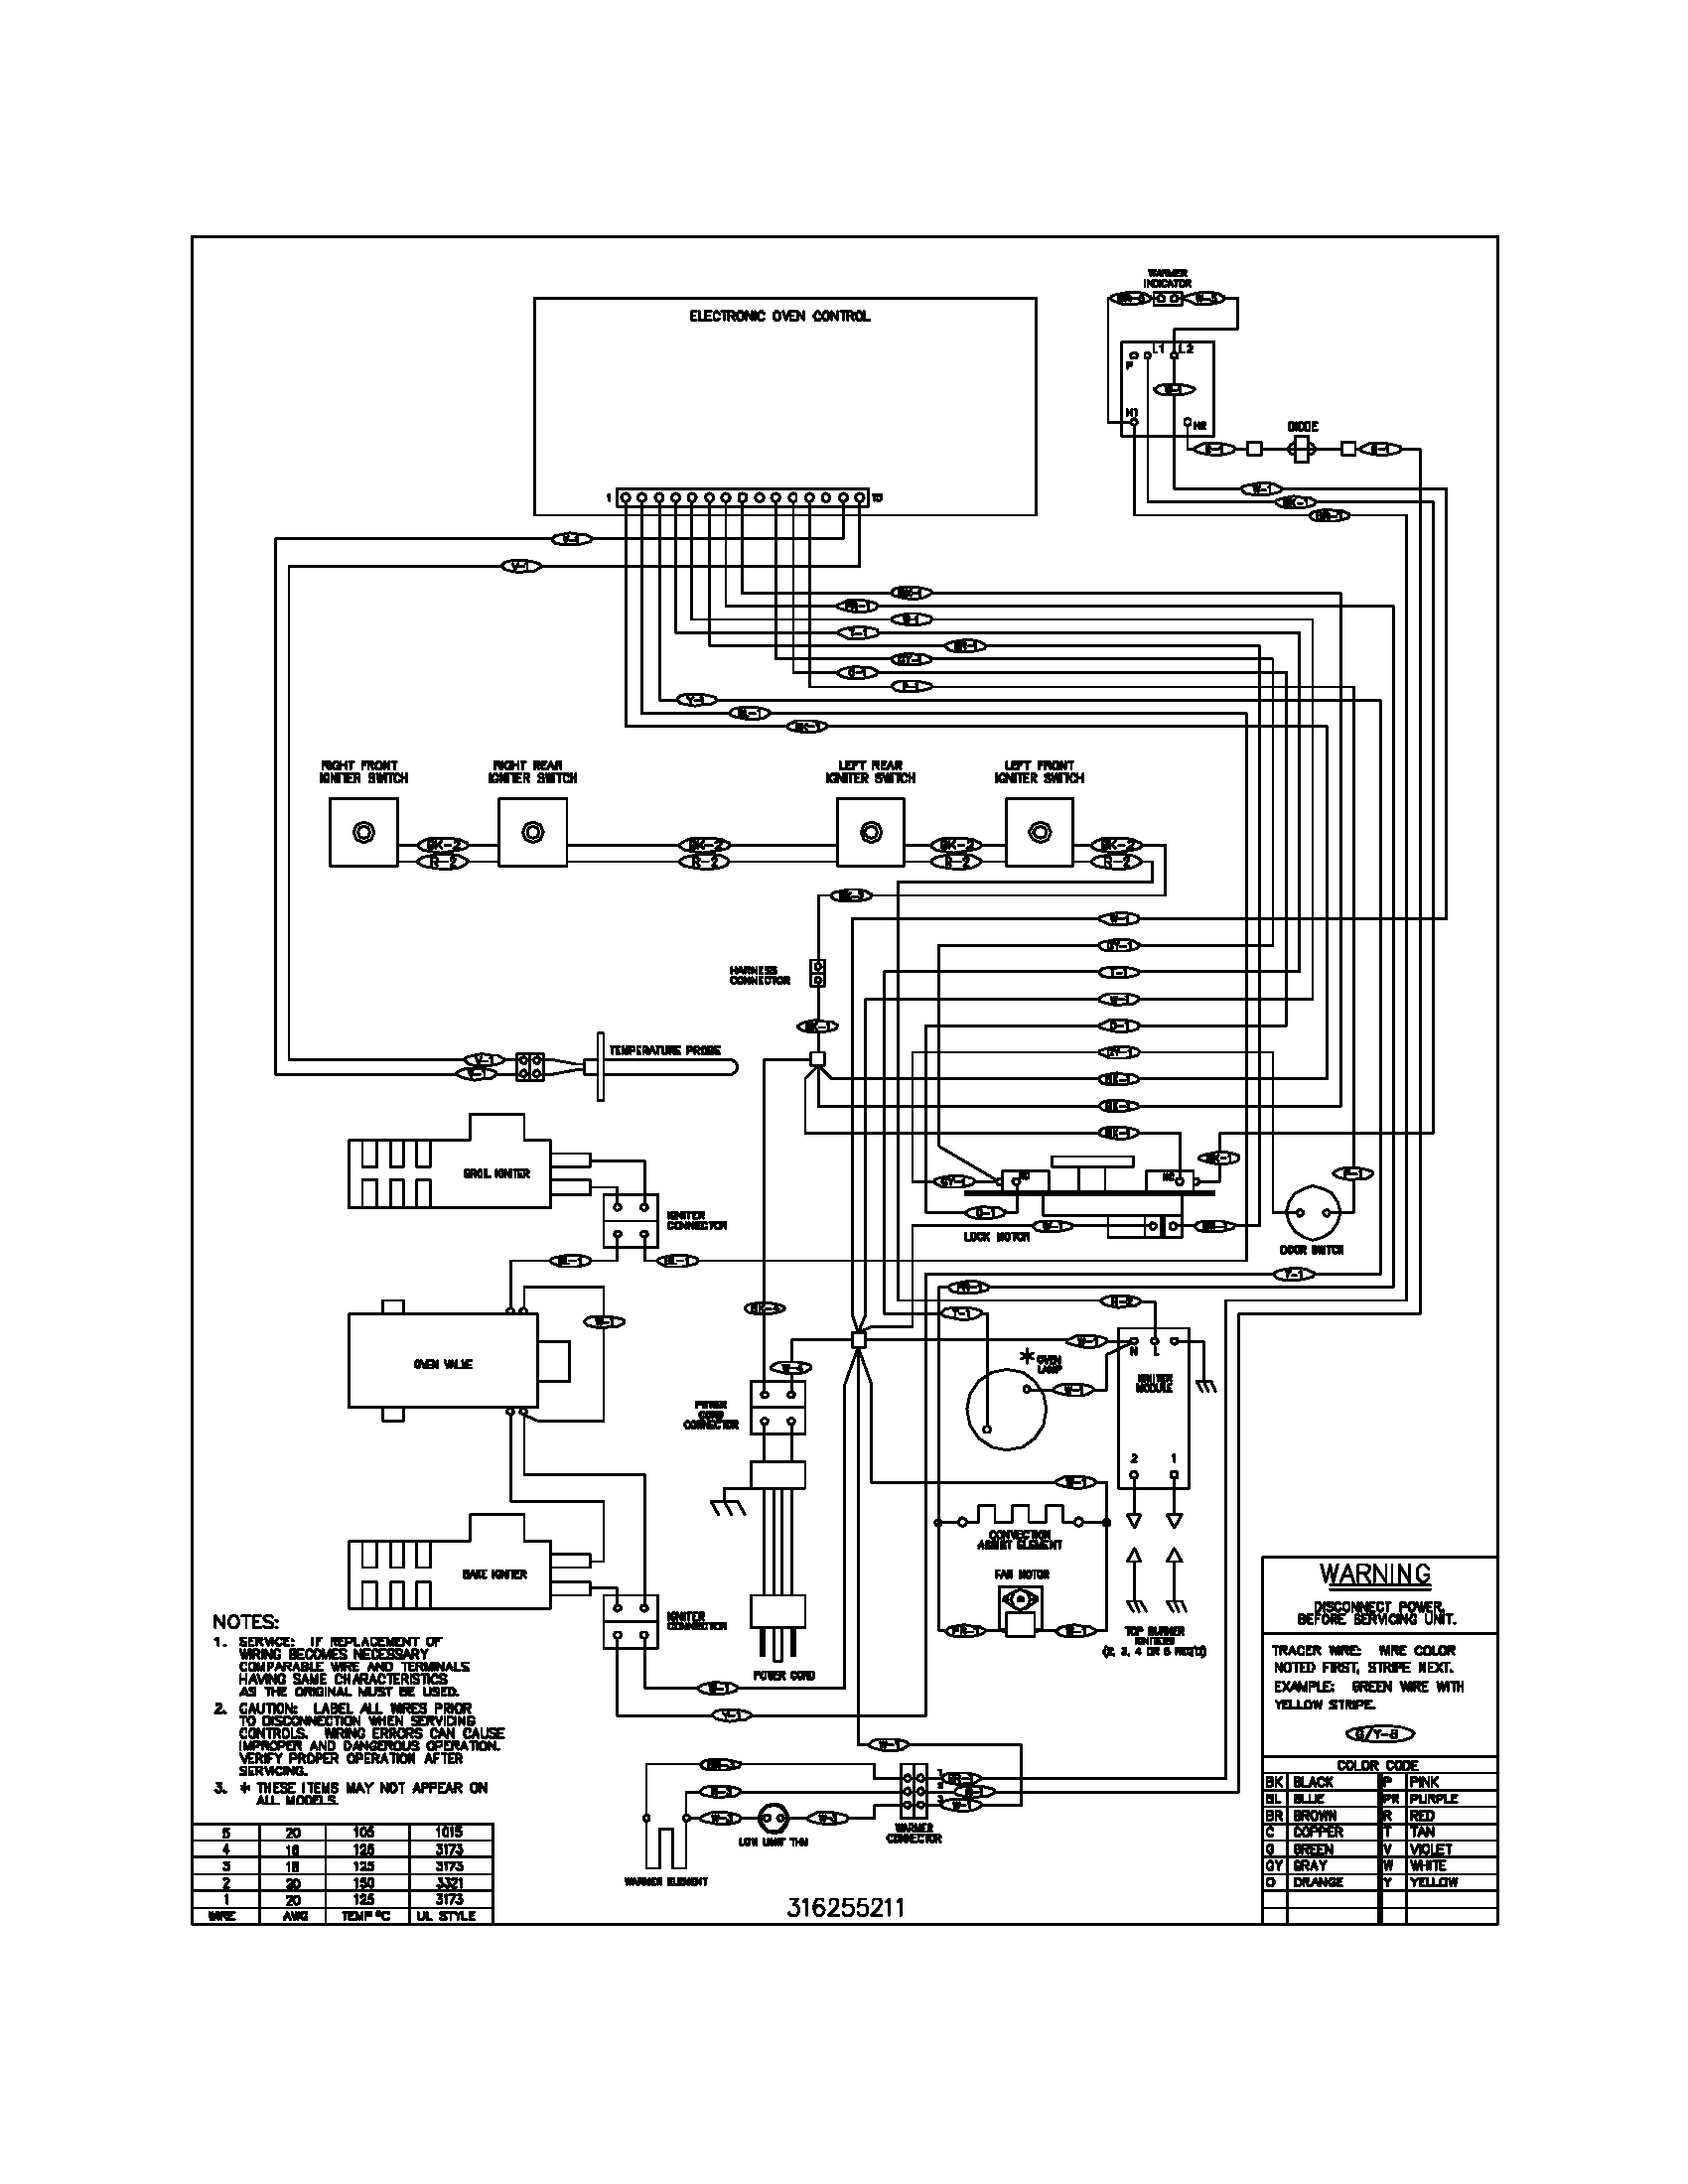 Electric Furnace Wiring Diagram Sequencer How Does A Heat ...